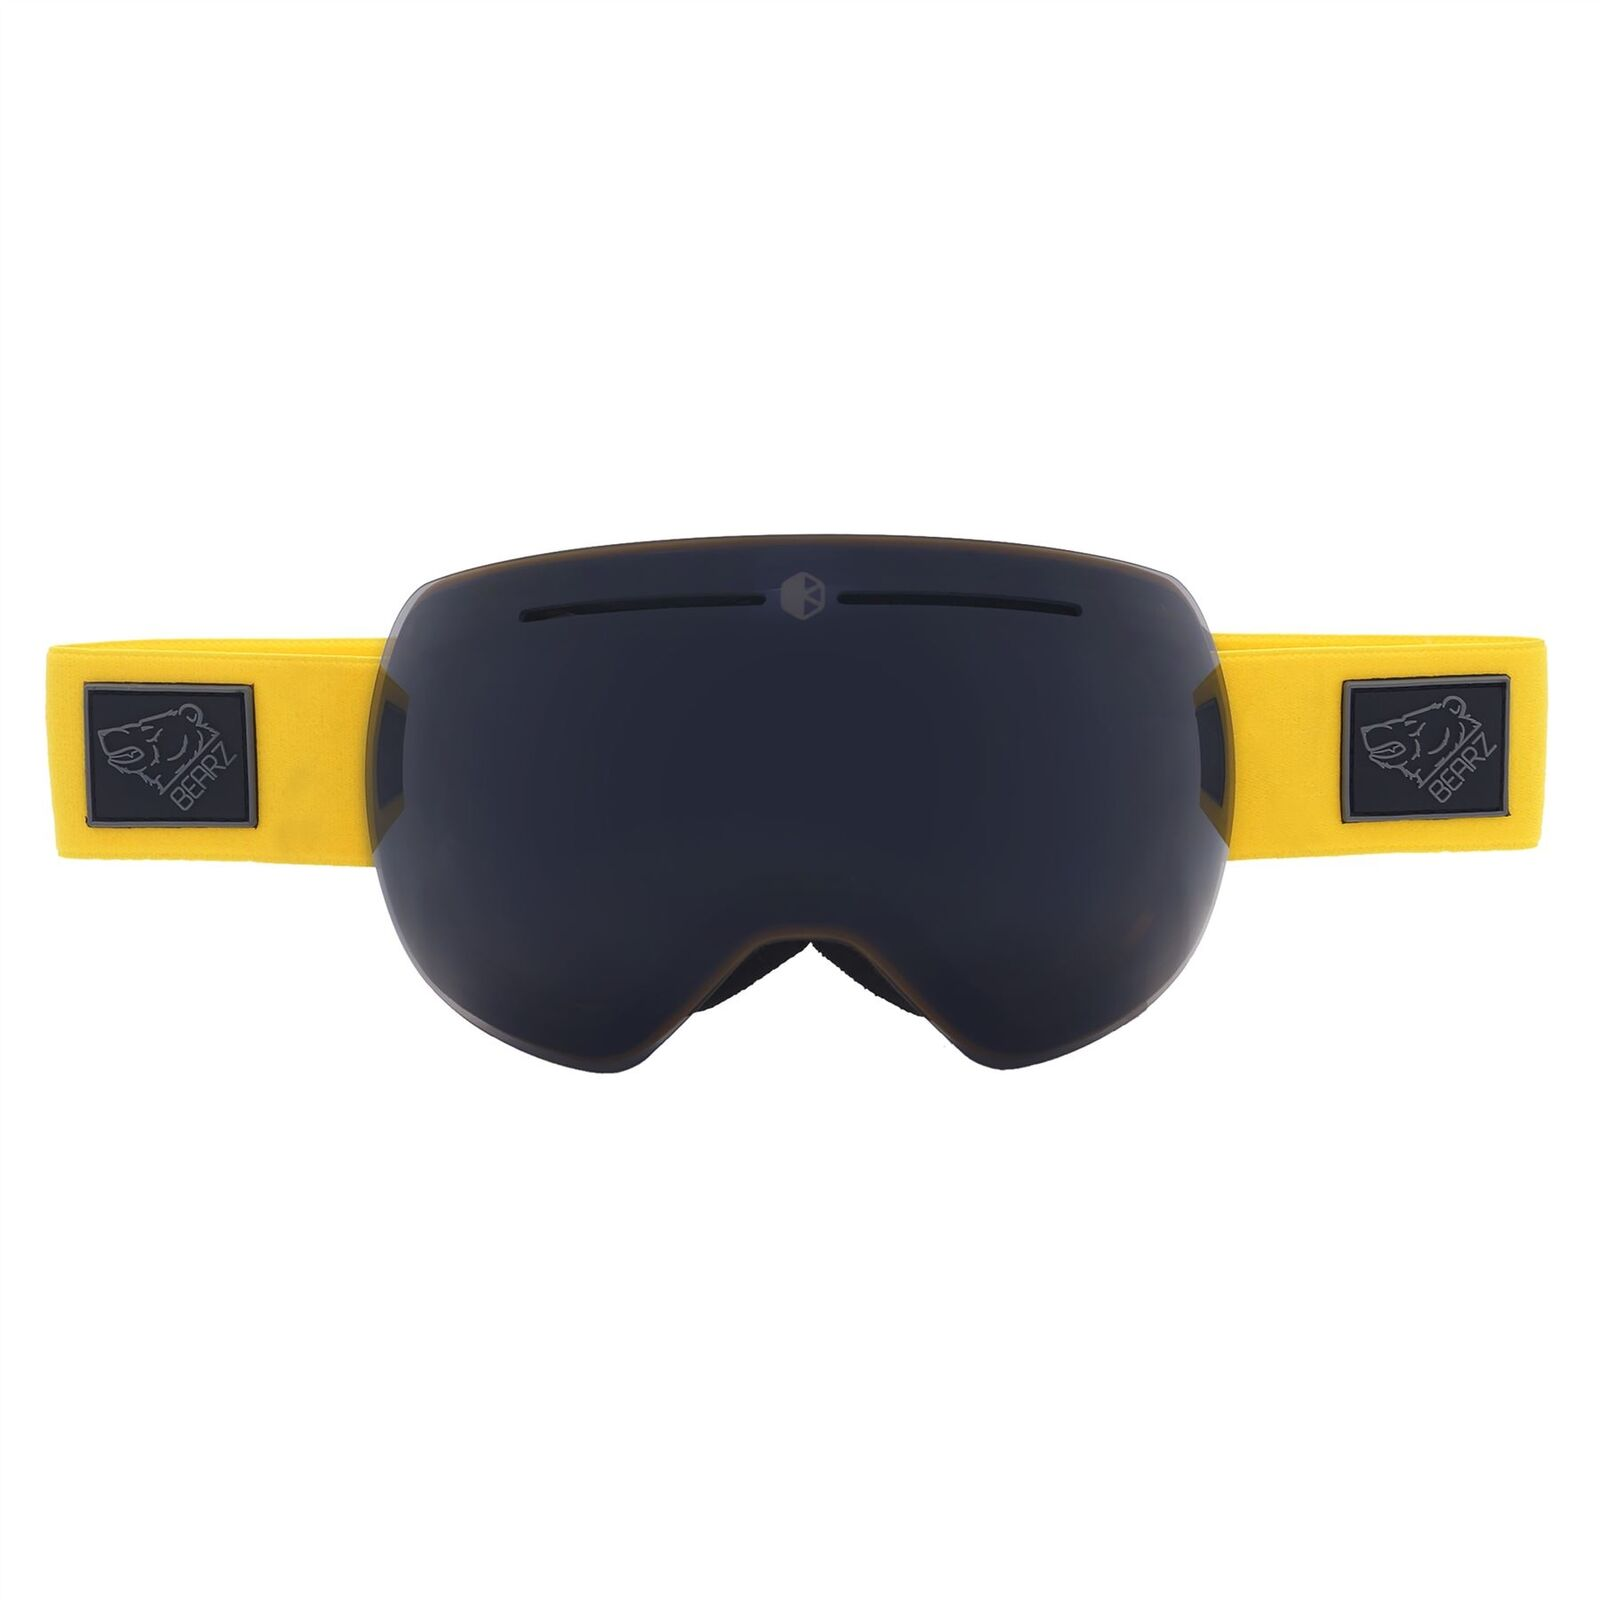 Bearz Yeti Yellow Magnetic Frameless Snow Snowboard Ski Goggles Mirror Anti-Fog